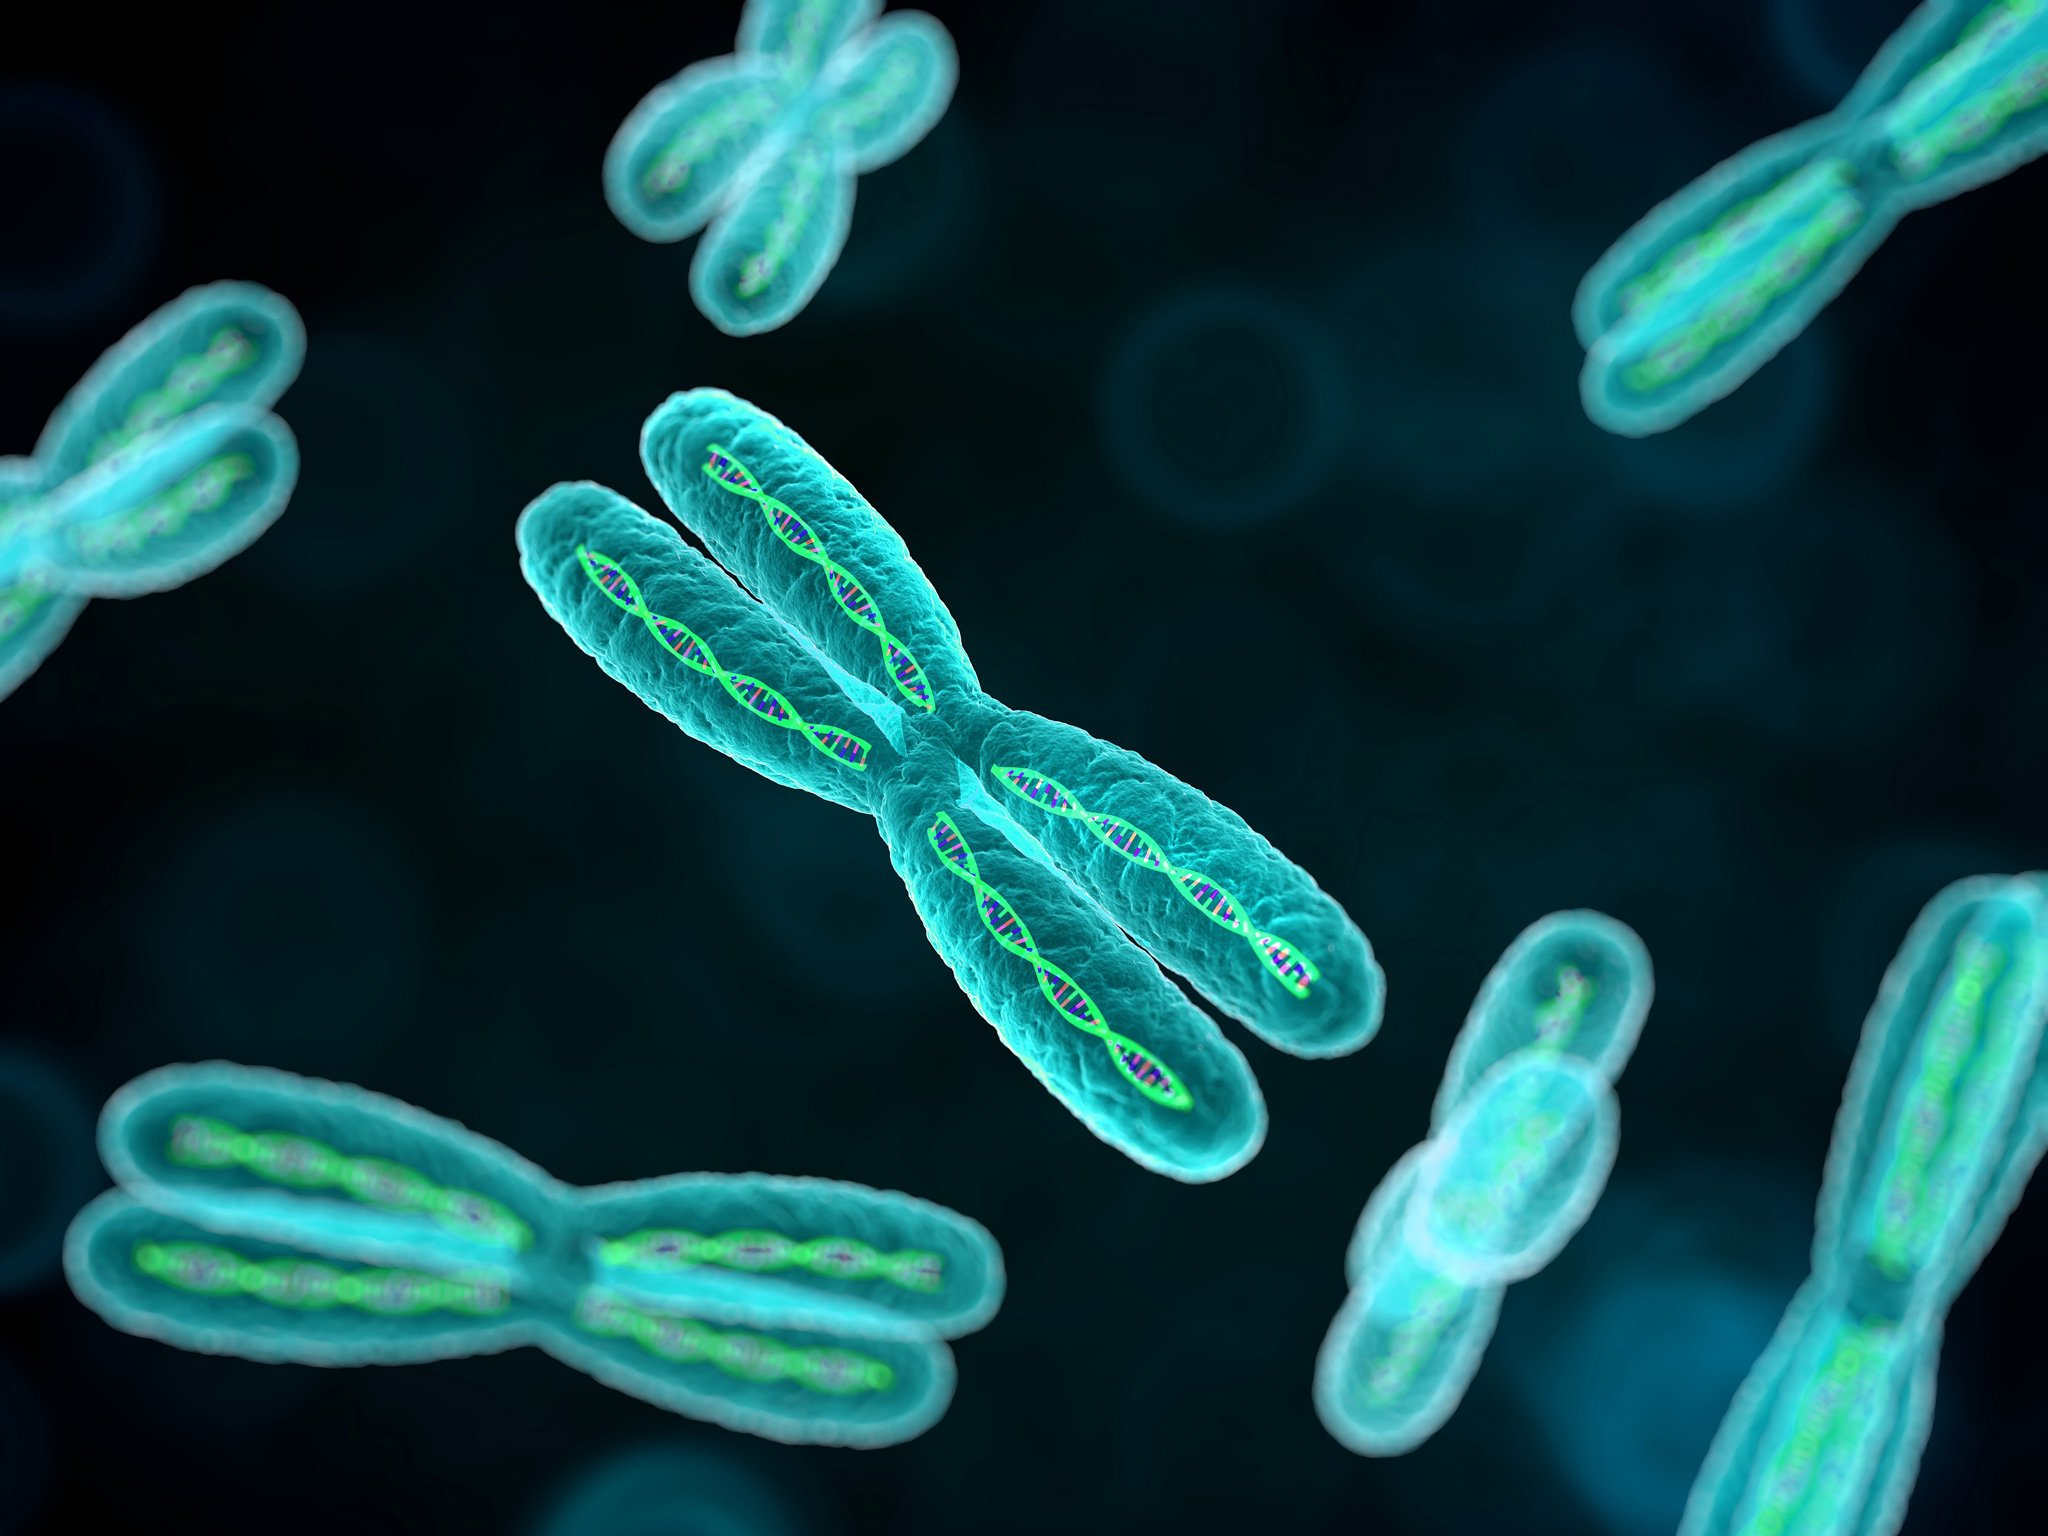 Chromosome dna pattern genetic 3 d psychedelic wallpaper 2048x1536 2048x1536